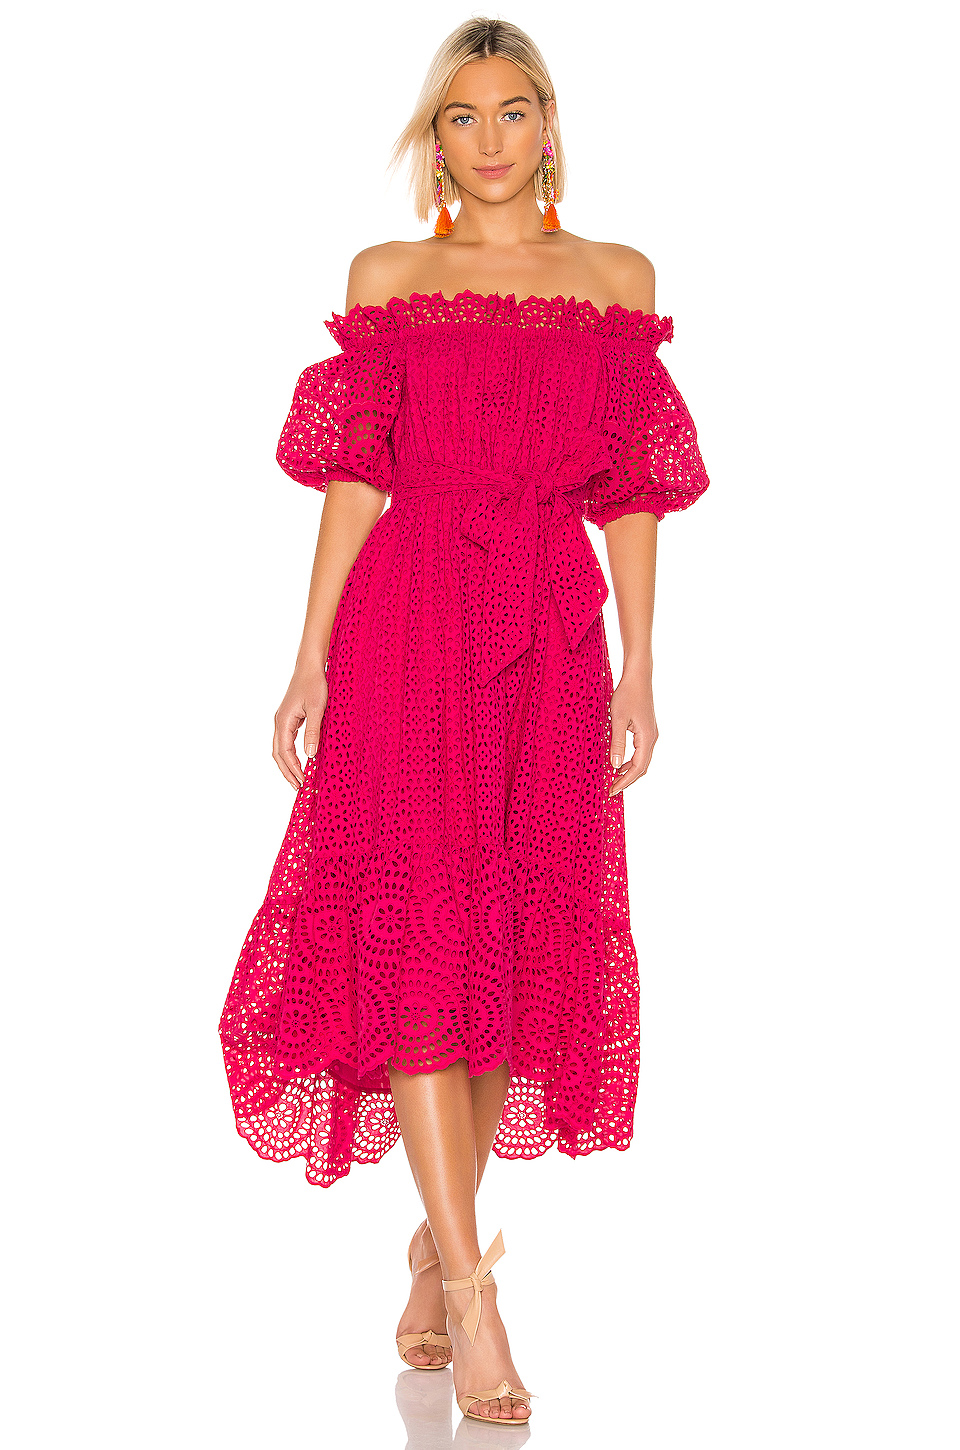 Ulla Johnson Hollie Dress in Fuchsia